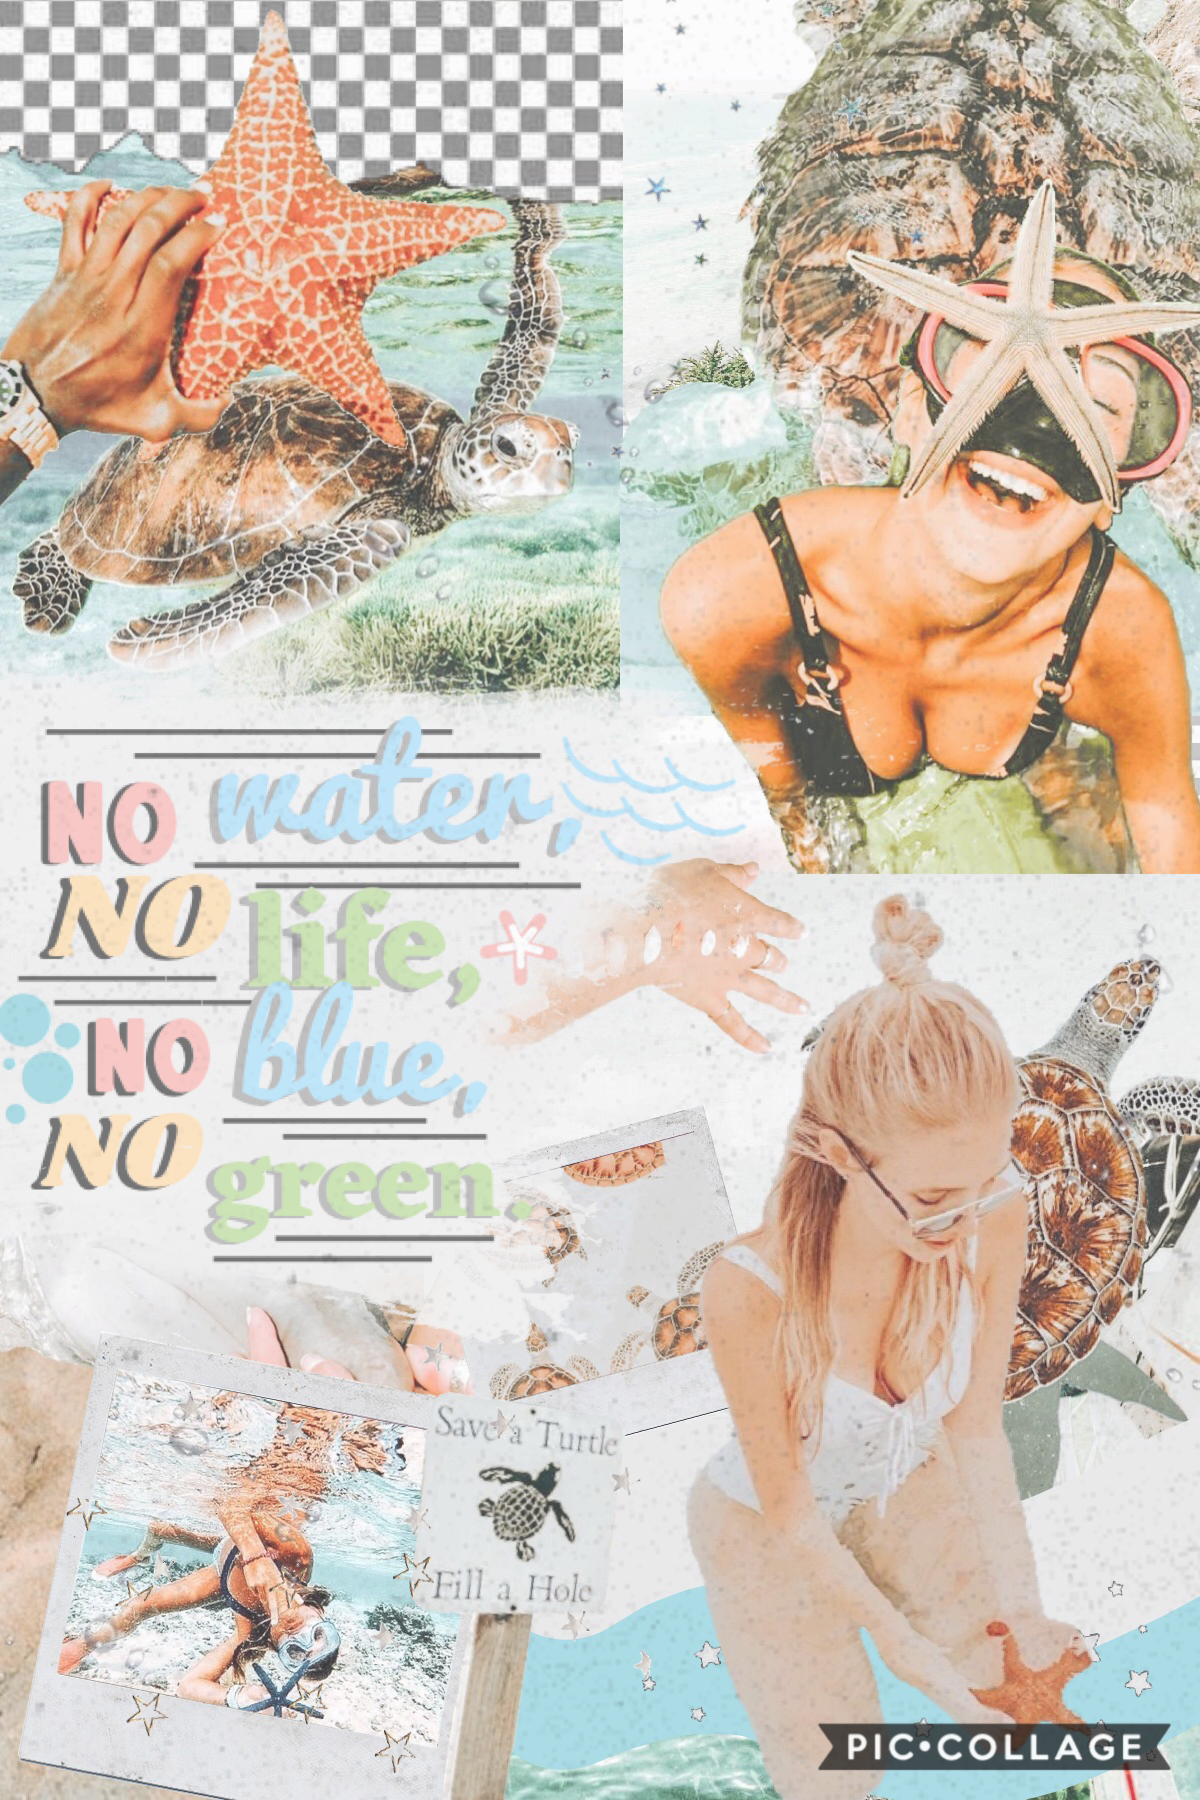 how's everyone doing? i love the earthy theme of this collage!! 🌿🌊🐢 now i'm thinking of writing a summer bucket list!! ☀️🌻🌼 also, have i mentioned before how i much i love cruising!! 🛳🚢⚓️ i've been on royal caribbean's allure of the seas!! third biggest i